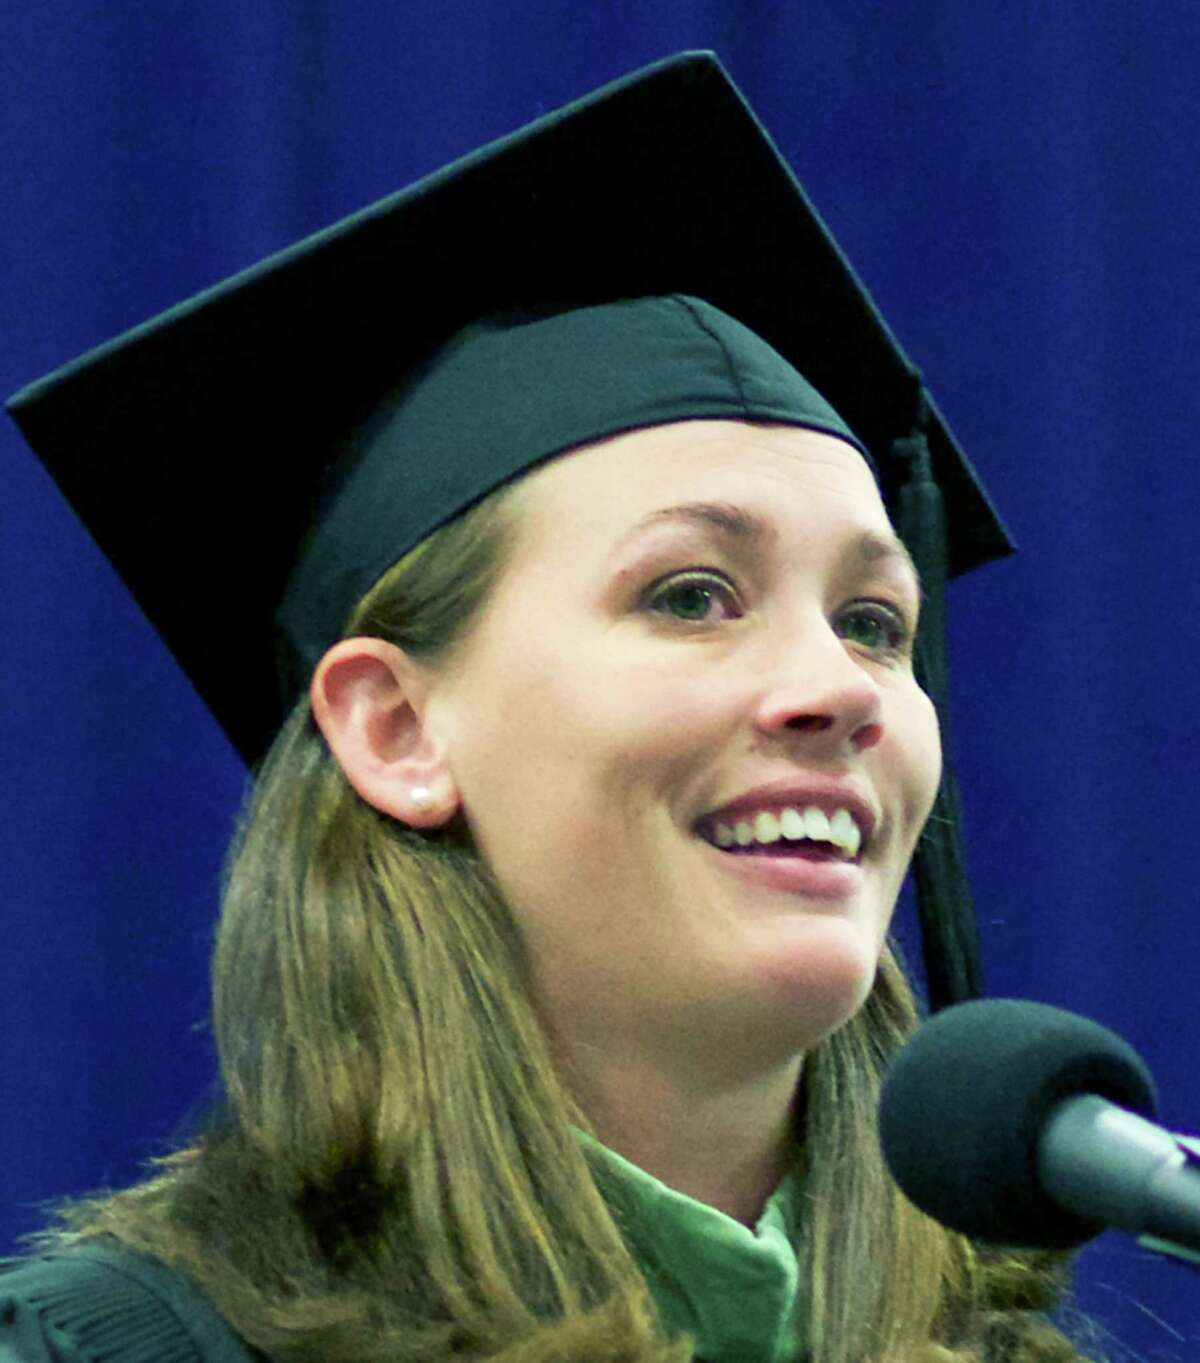 NMHS faculty member Erica Keane offers the graduates sage advice, mixed with a bit of good humor, during New Milford High School's June 21 commencement ceremony for the Class of 2014 at the O'Neill Center on the westside campus of Western Connecticut State University in Danbury.